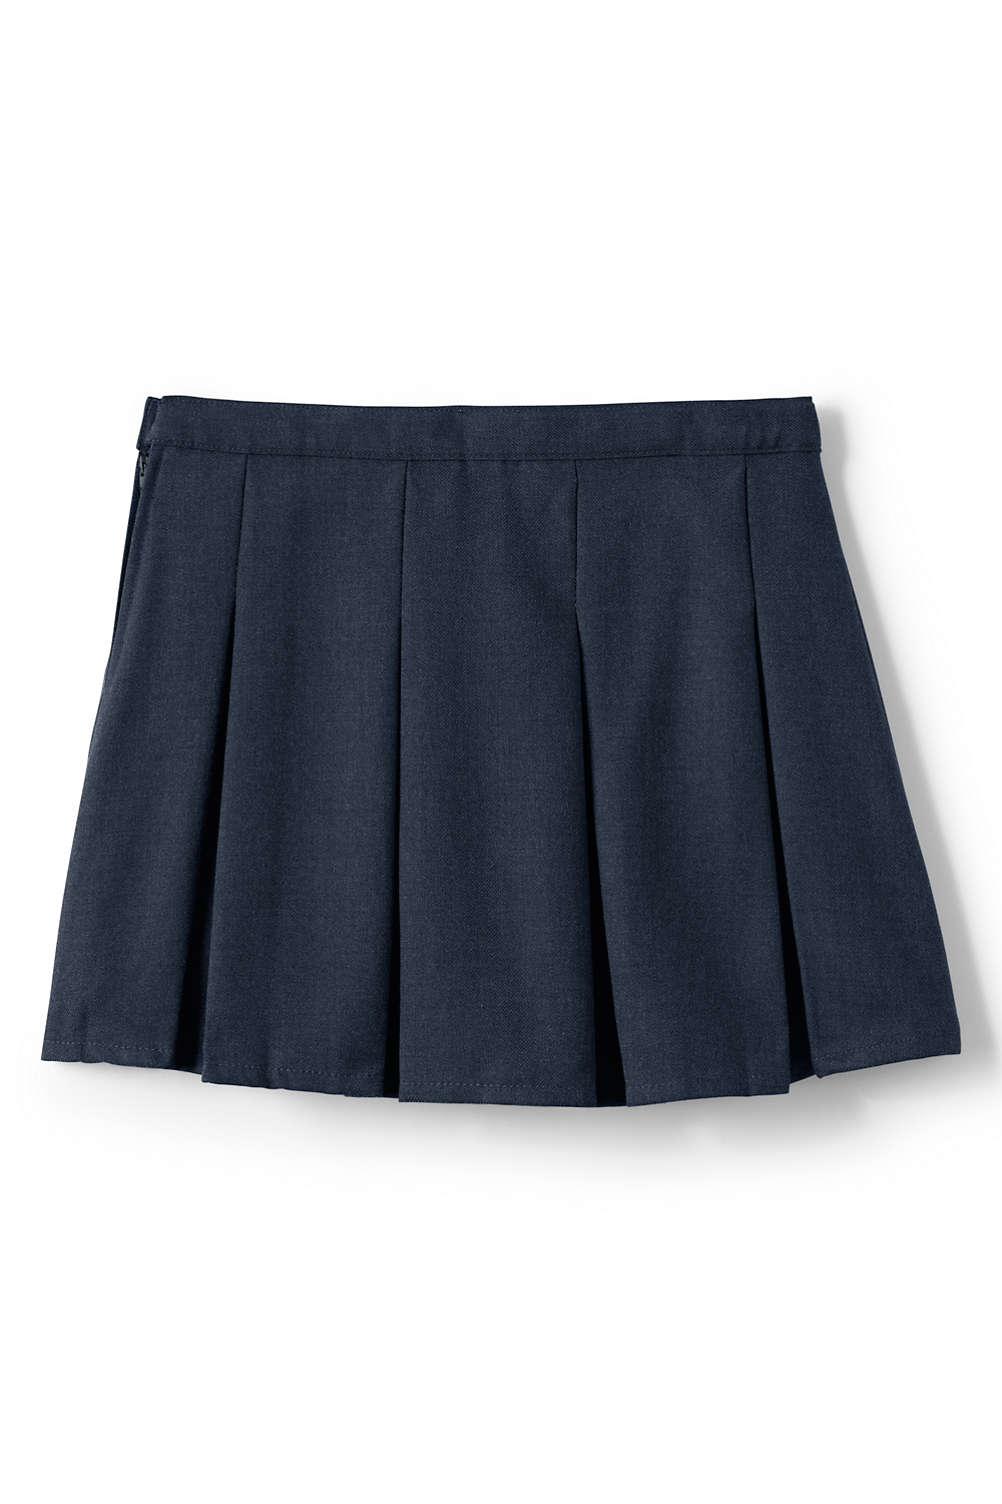 69ddc3e411f School Uniform Solid Box Pleat Skirt Above Knee from Lands  End